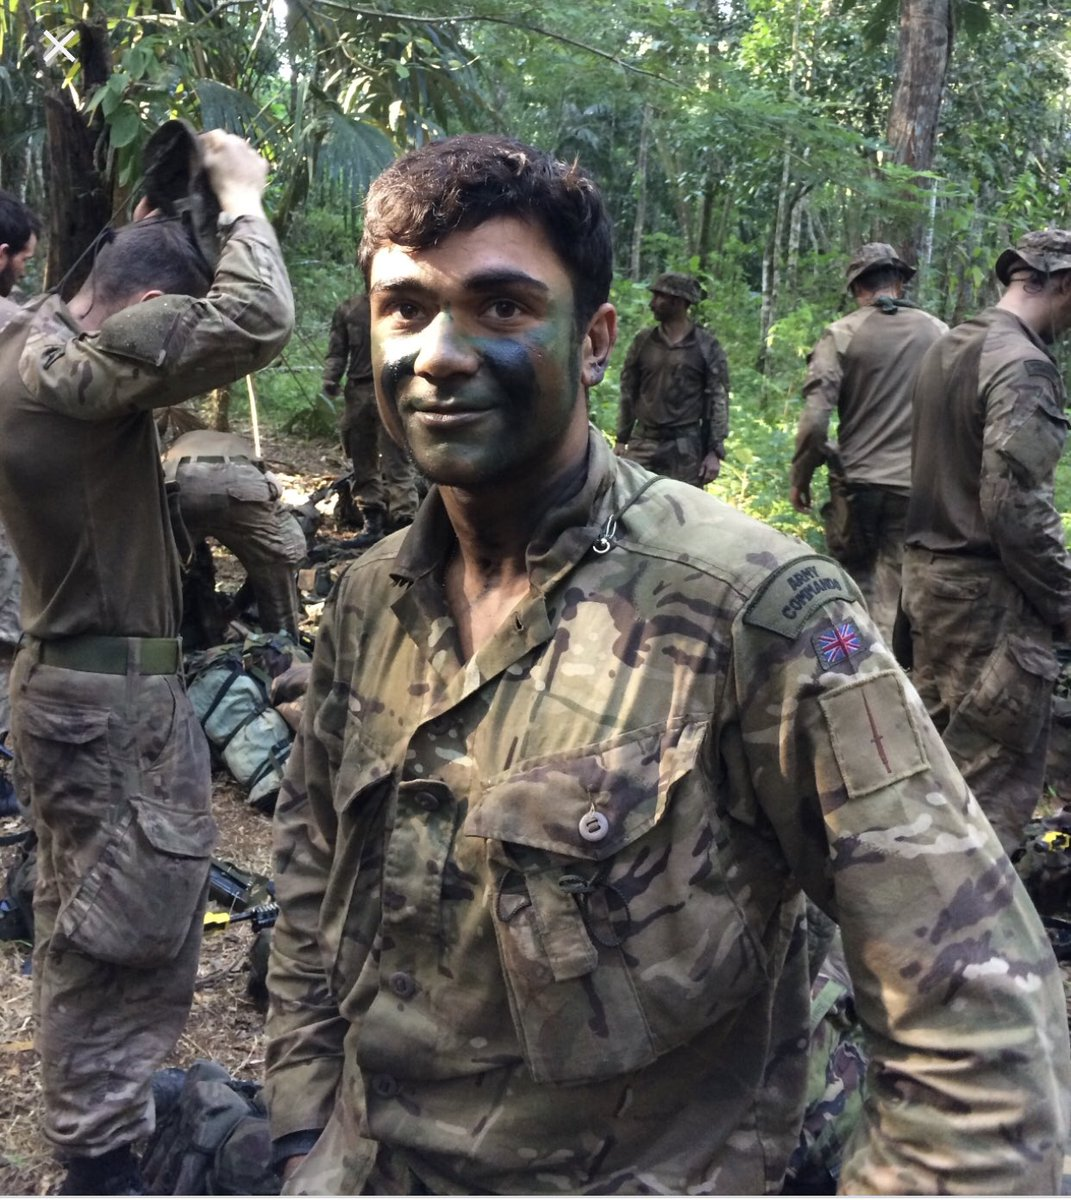 Commandos were formed in WW2 at request of Churchill. After war most commando units disbanded except @RoyalMarines units and certain @BritishArmy personnel, who still today complete the arduous training. This commando is at @JungleDivision  #Infantry<br>http://pic.twitter.com/RZJSytauwg